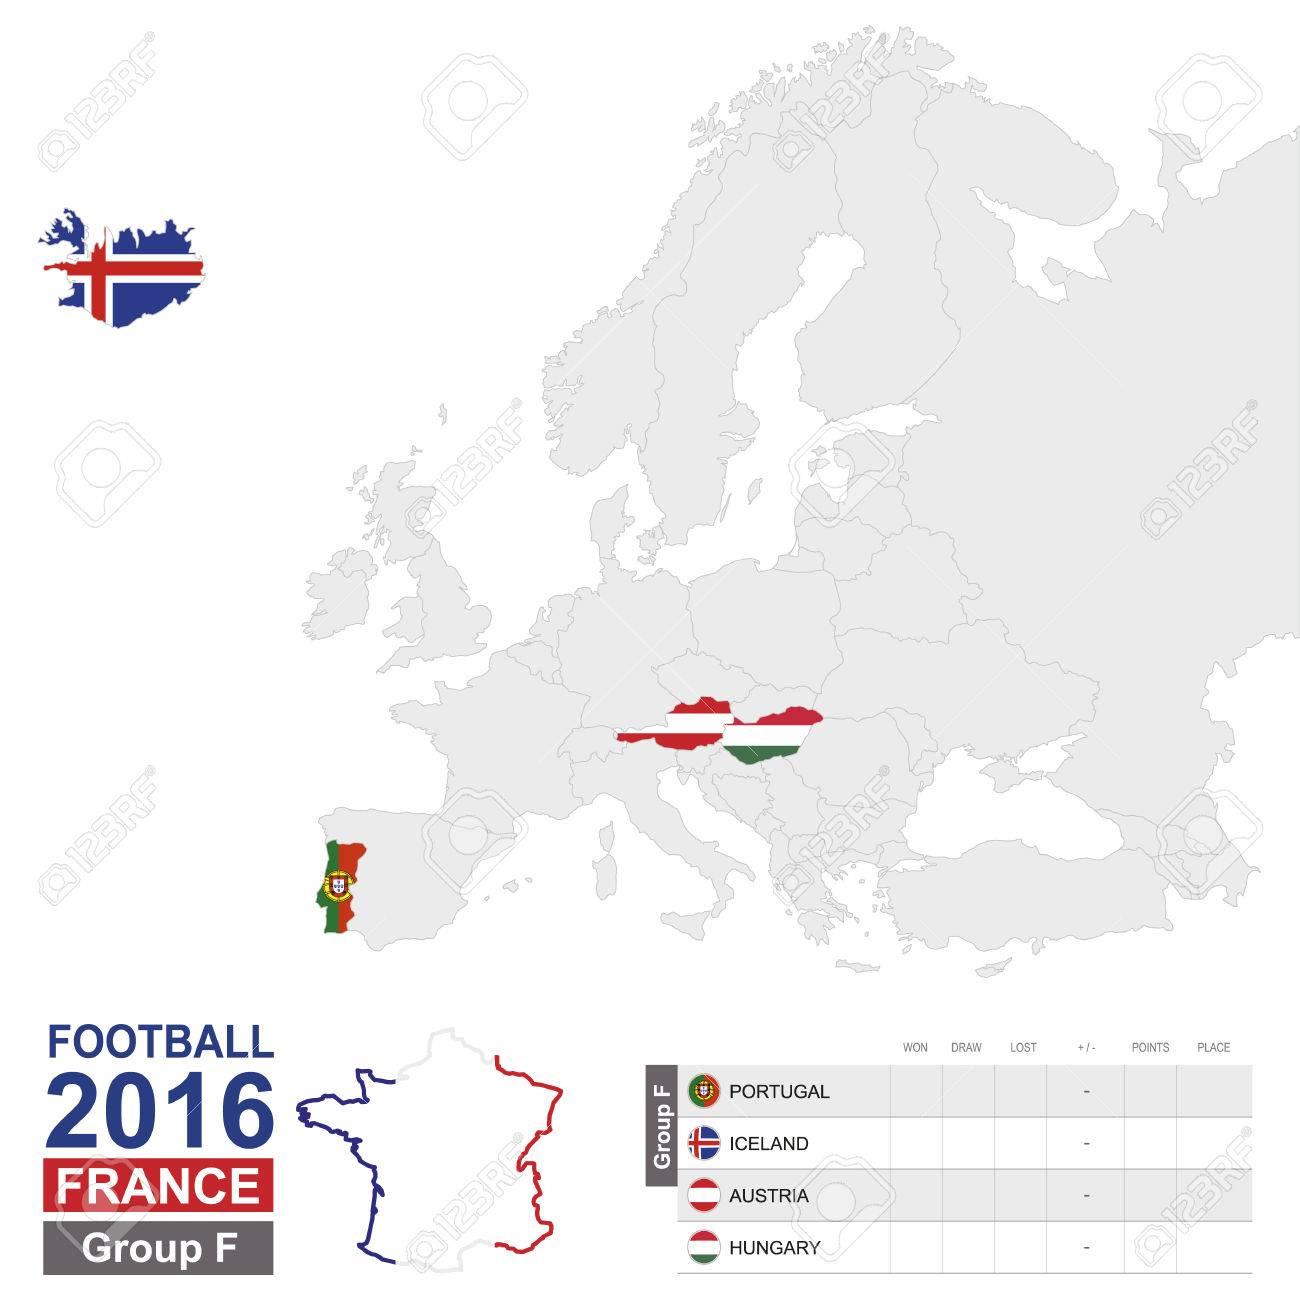 football 2016 group f table group f highlighted on europe map